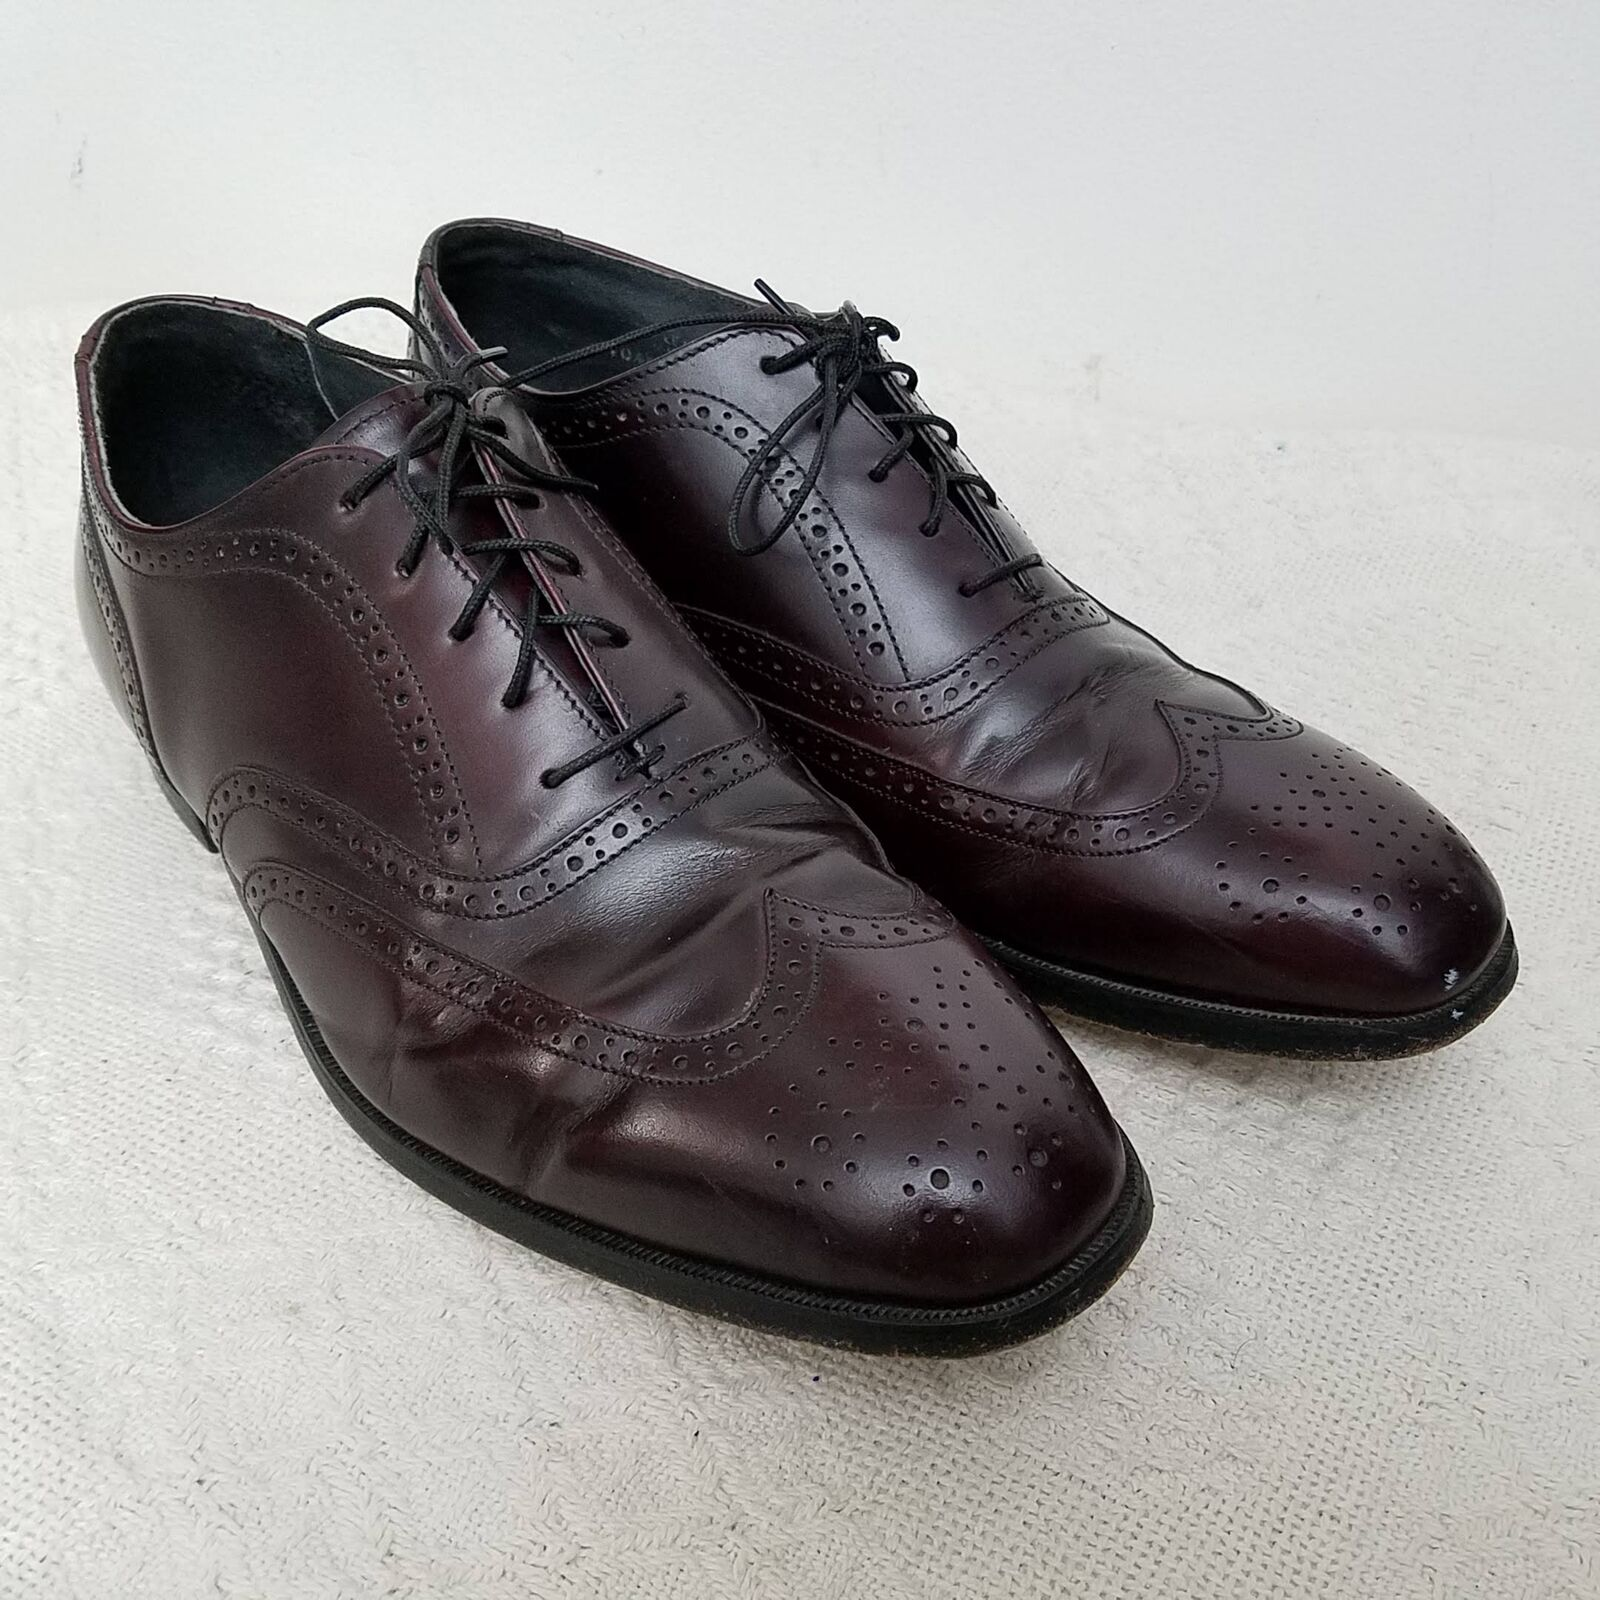 Hanover Mens Brogue Wingtip shoes 10.5 Dark Burgundy Lace Up Leather Oxford USA